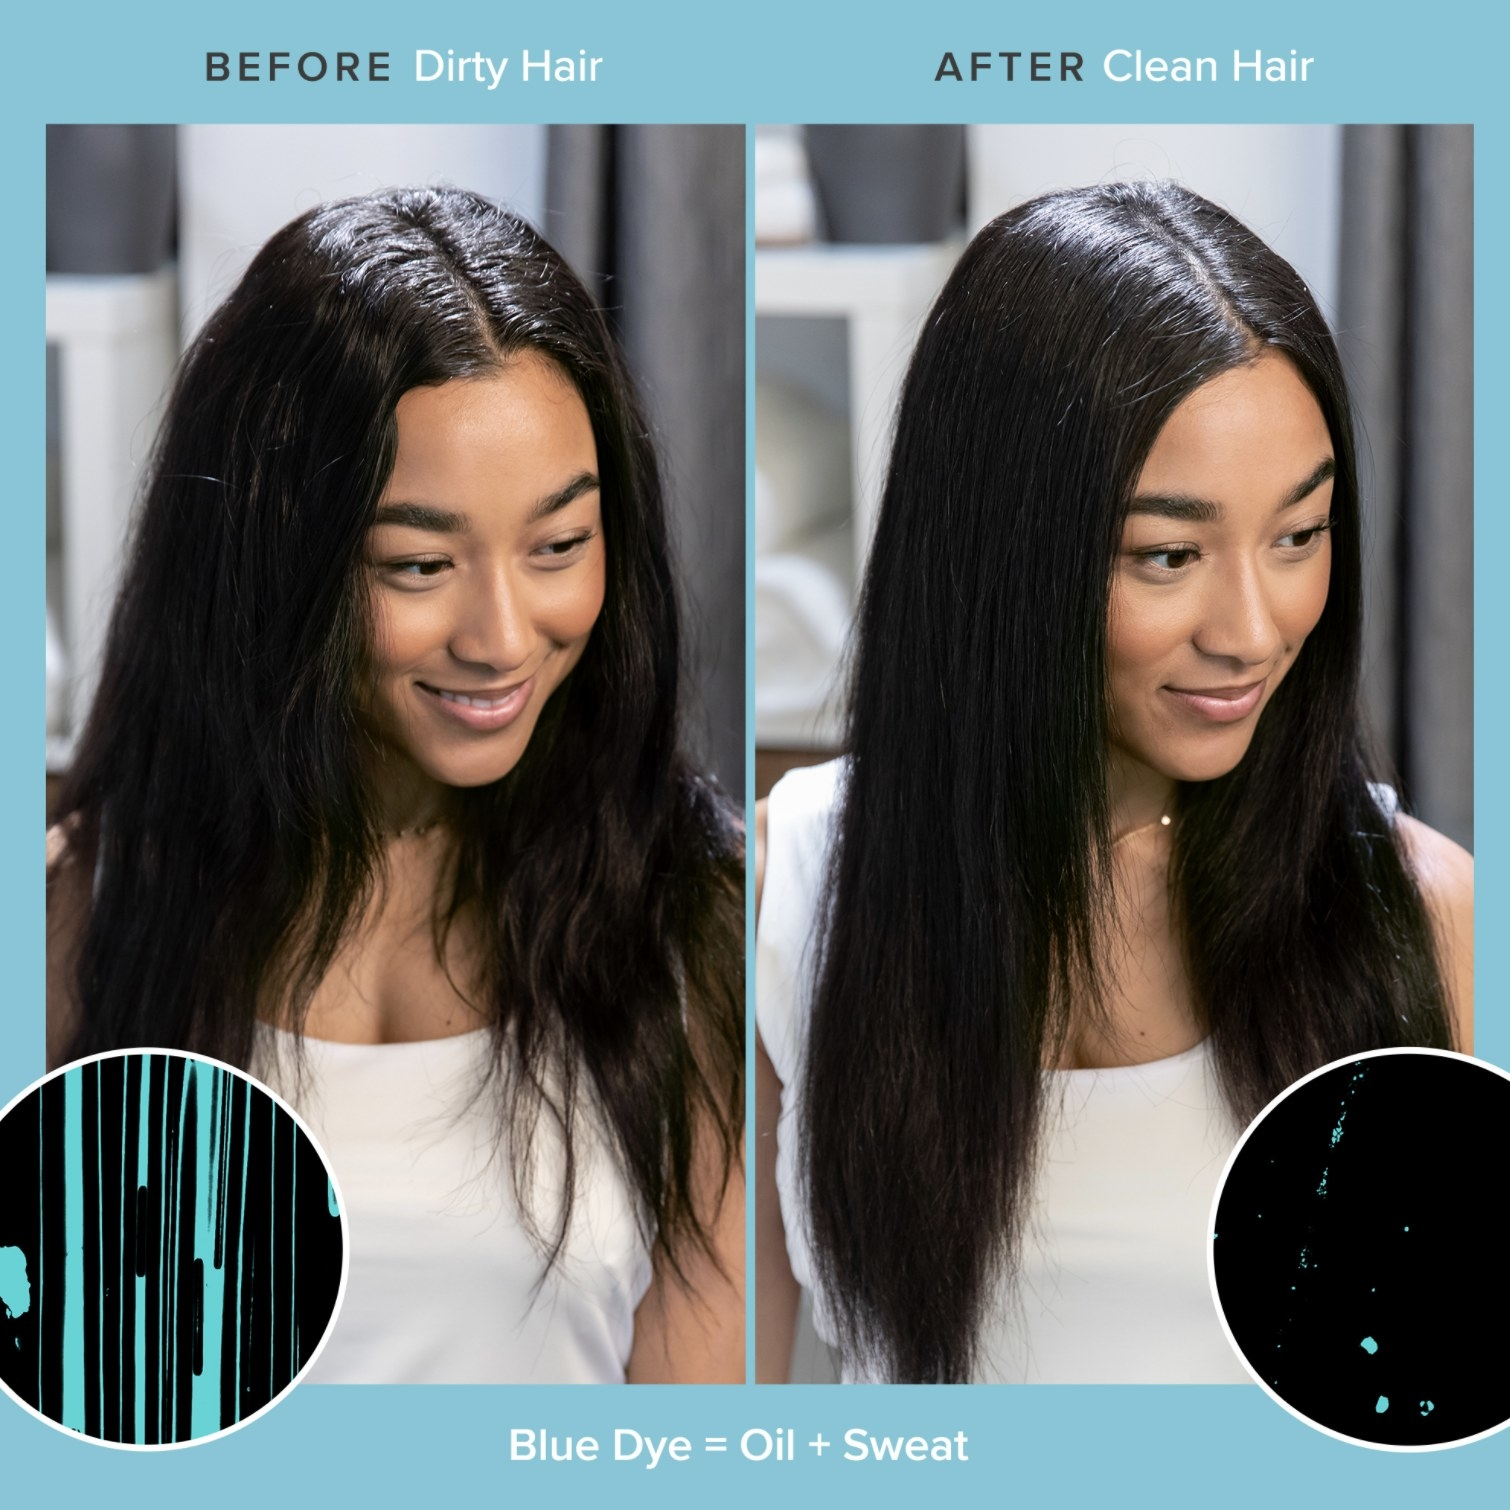 A before and after photo of a person's hair